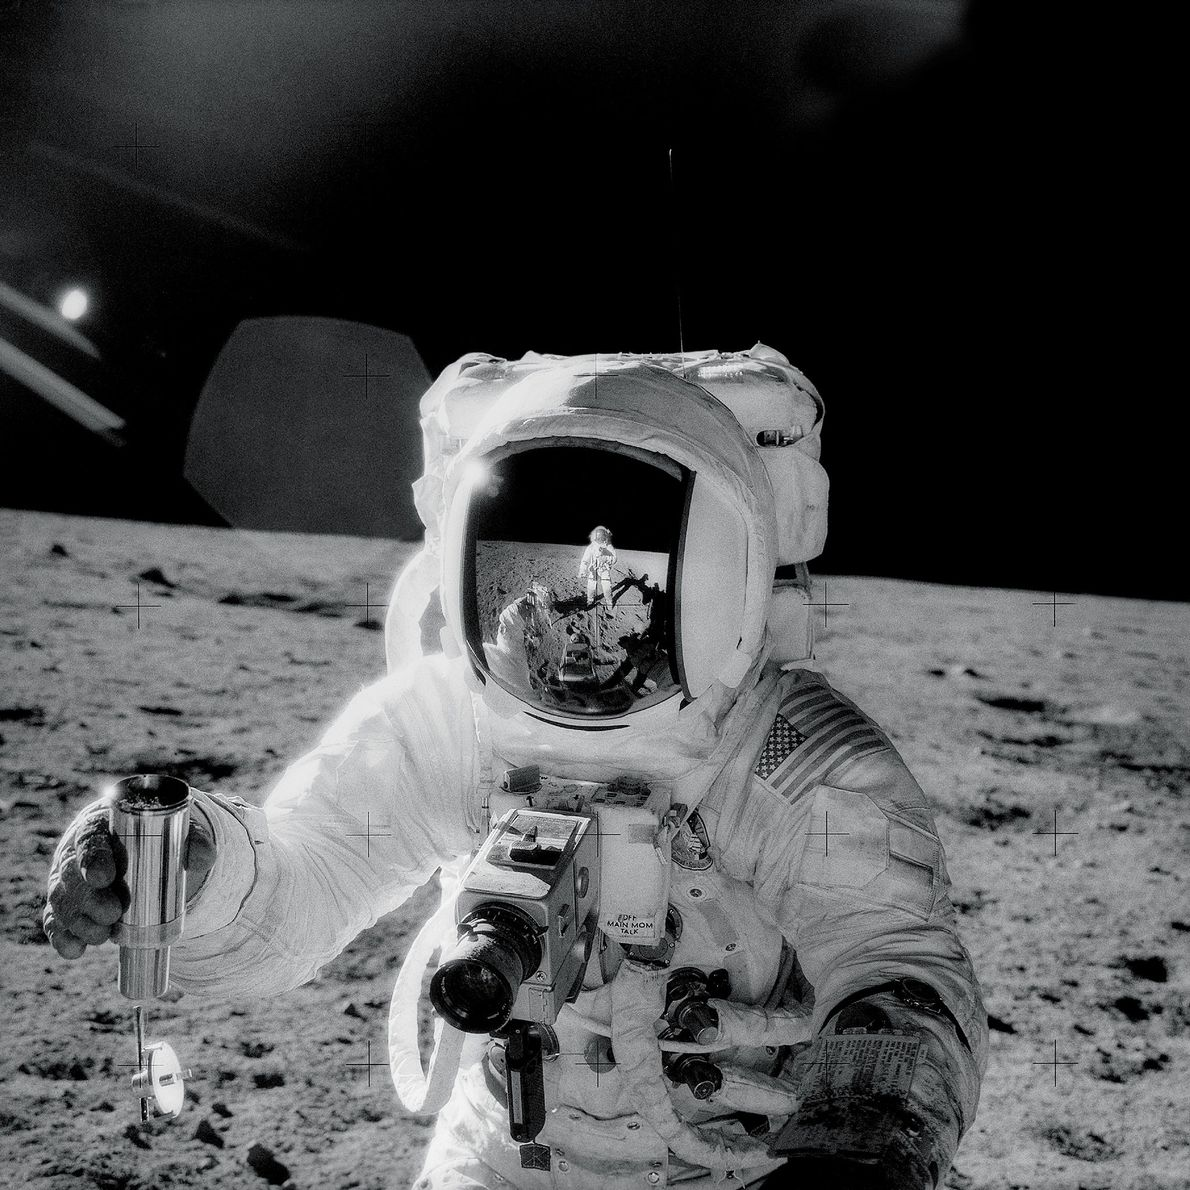 During the Apollo 12 mission in 1969, astronaut Charles Conrad captured this selfie reflected in fellow ...